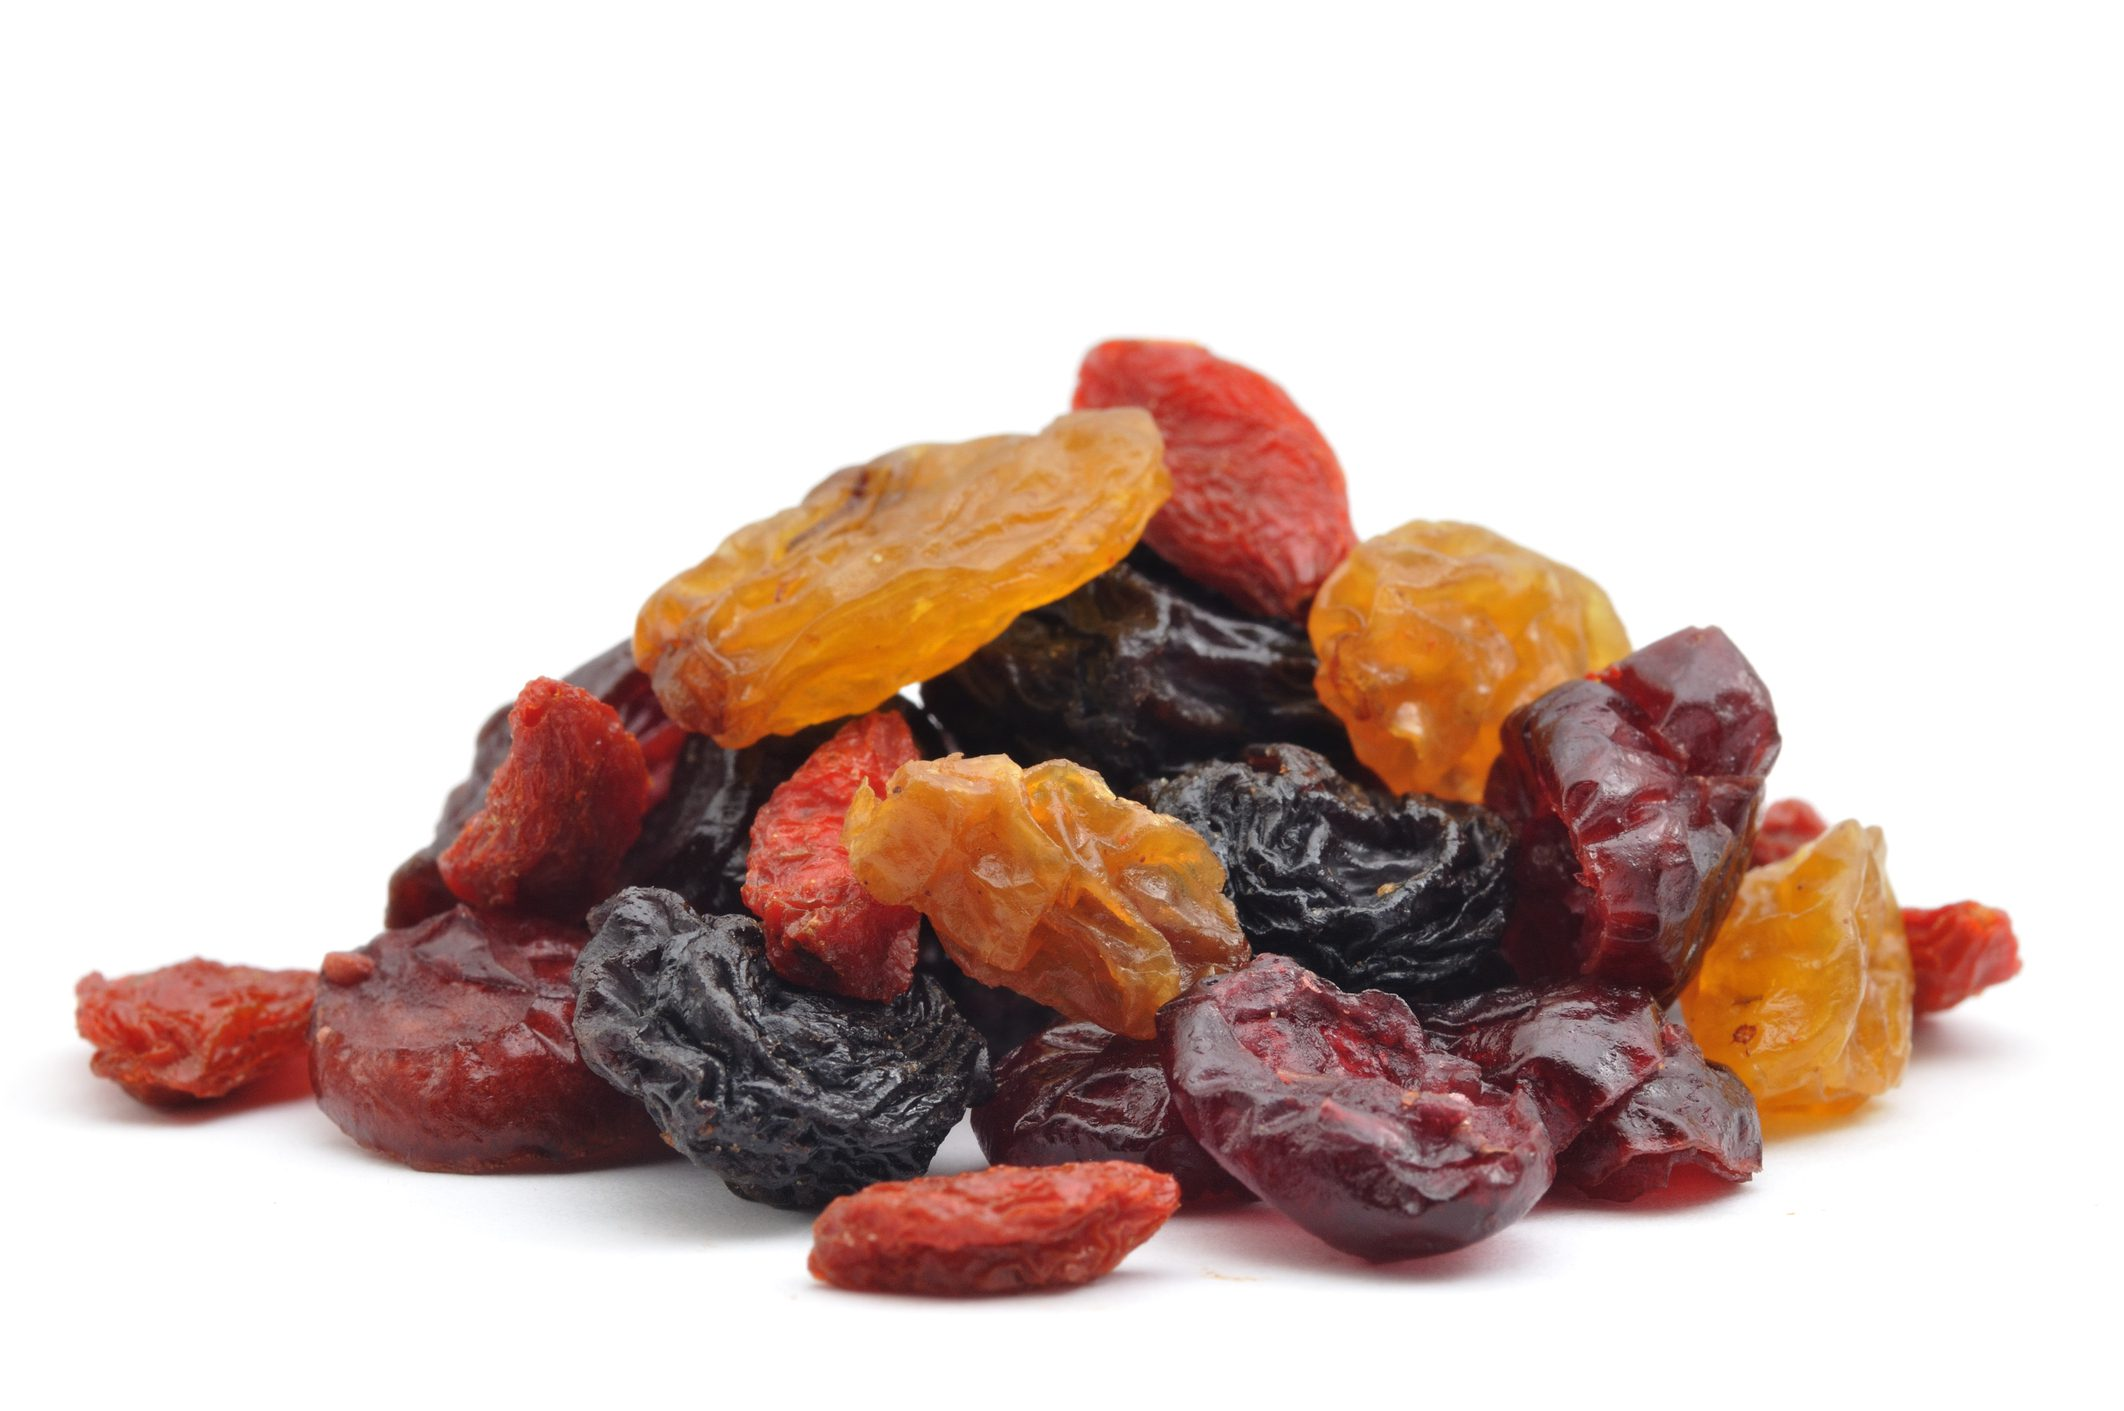 A variety of dried fruit can be made using oven drying or a dehydrator.